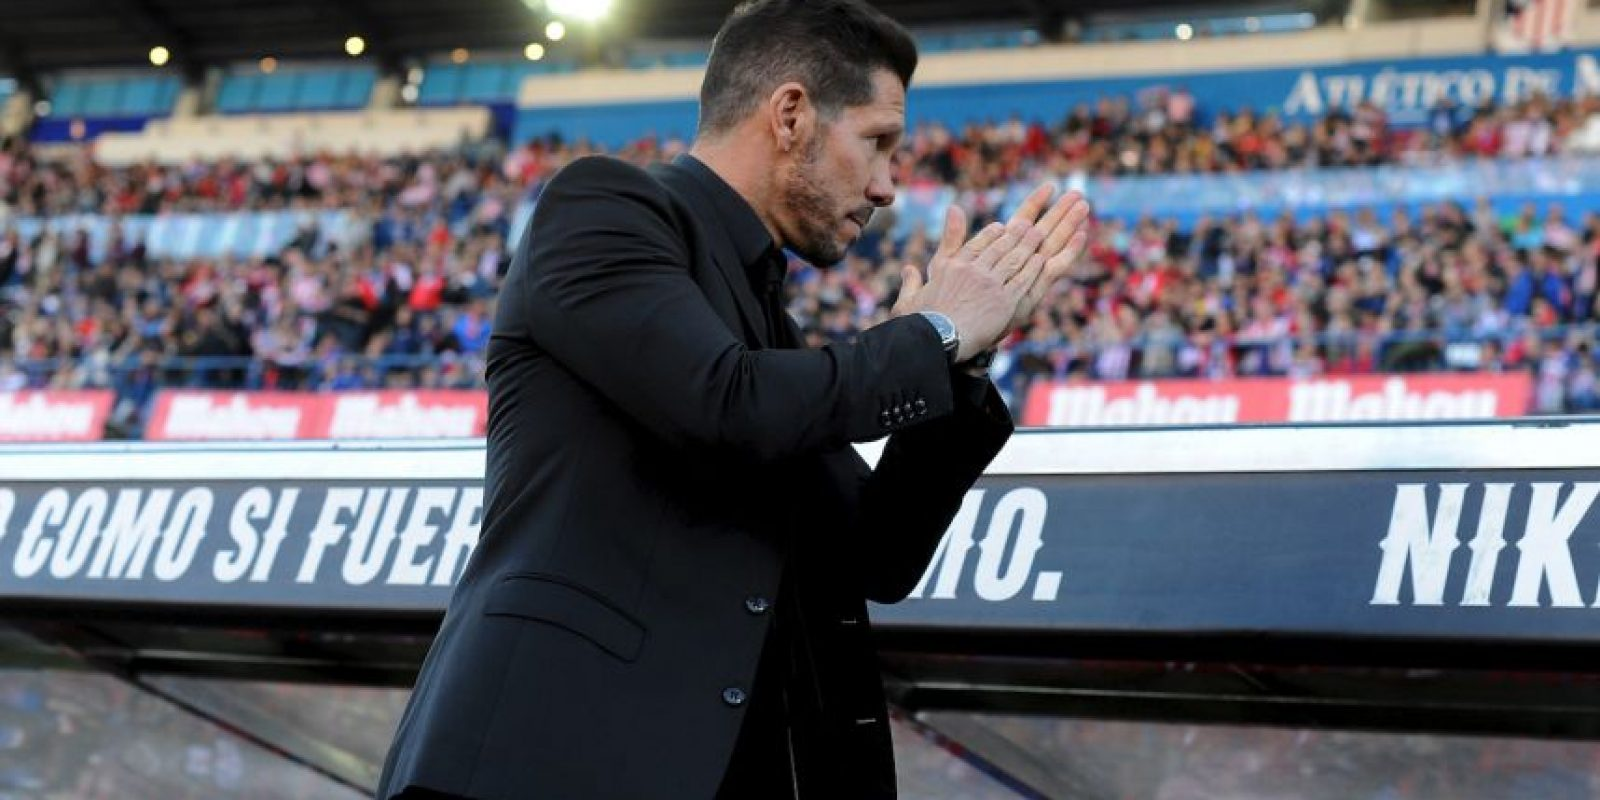 Con Un Pie En La Final De La Champions Simeone Cumple 46